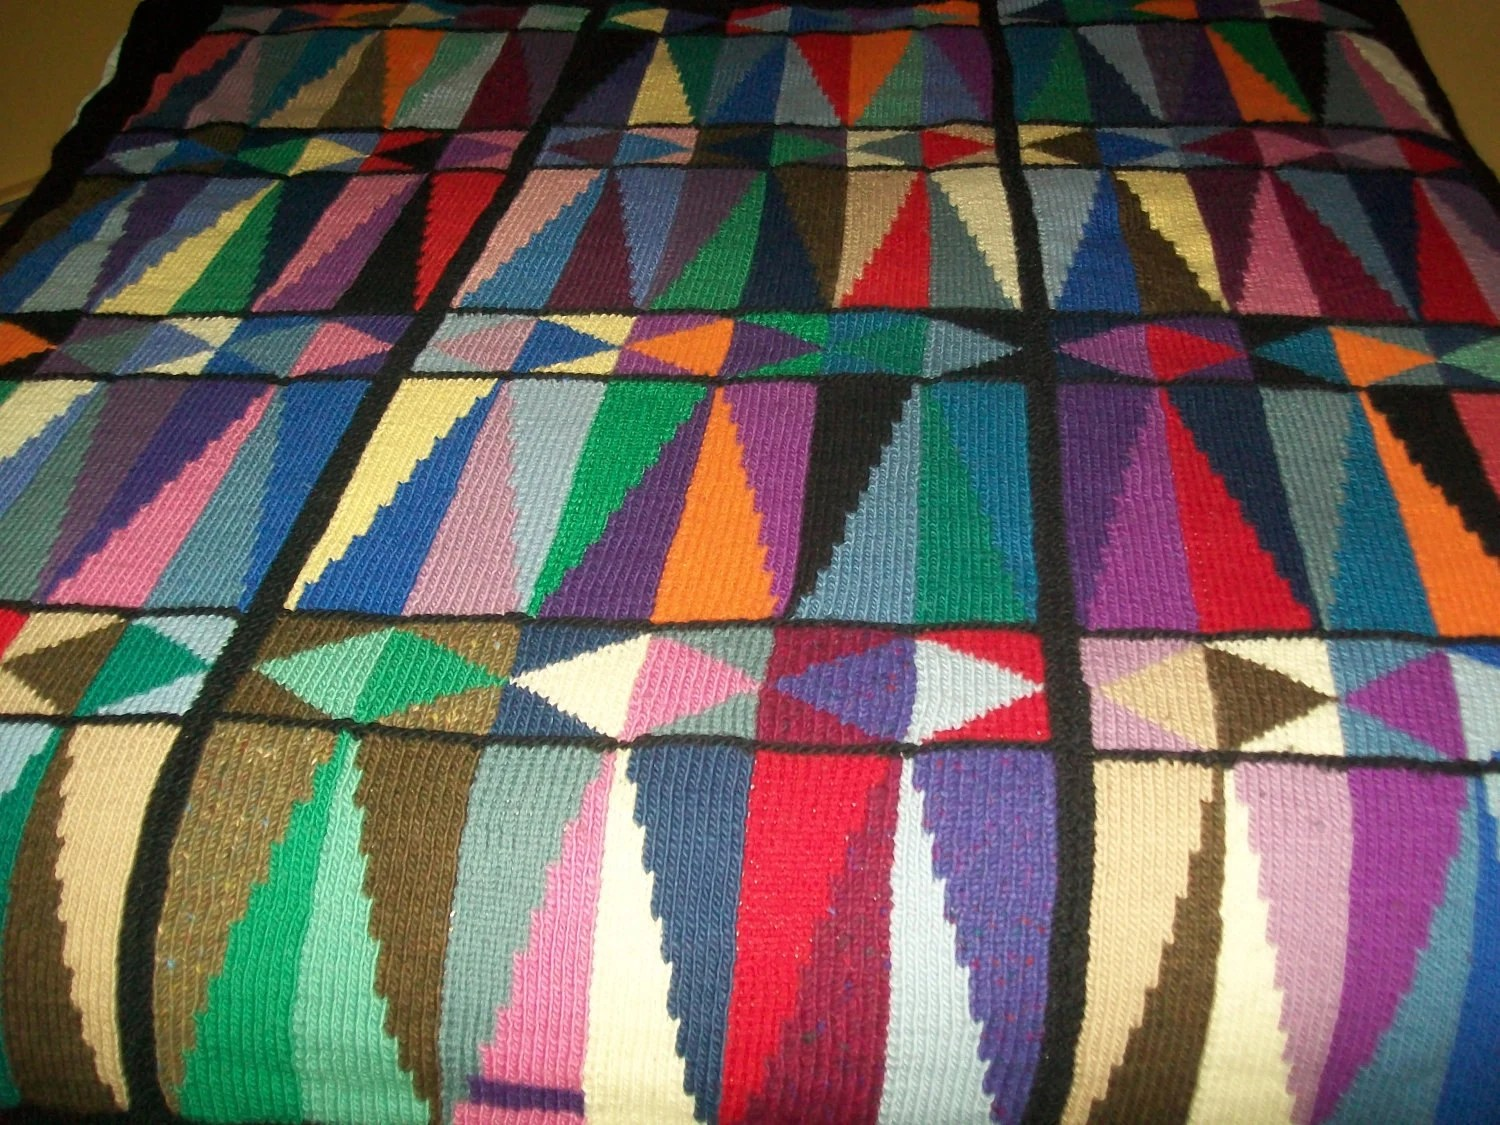 Truly a one of a kind geometric blanket